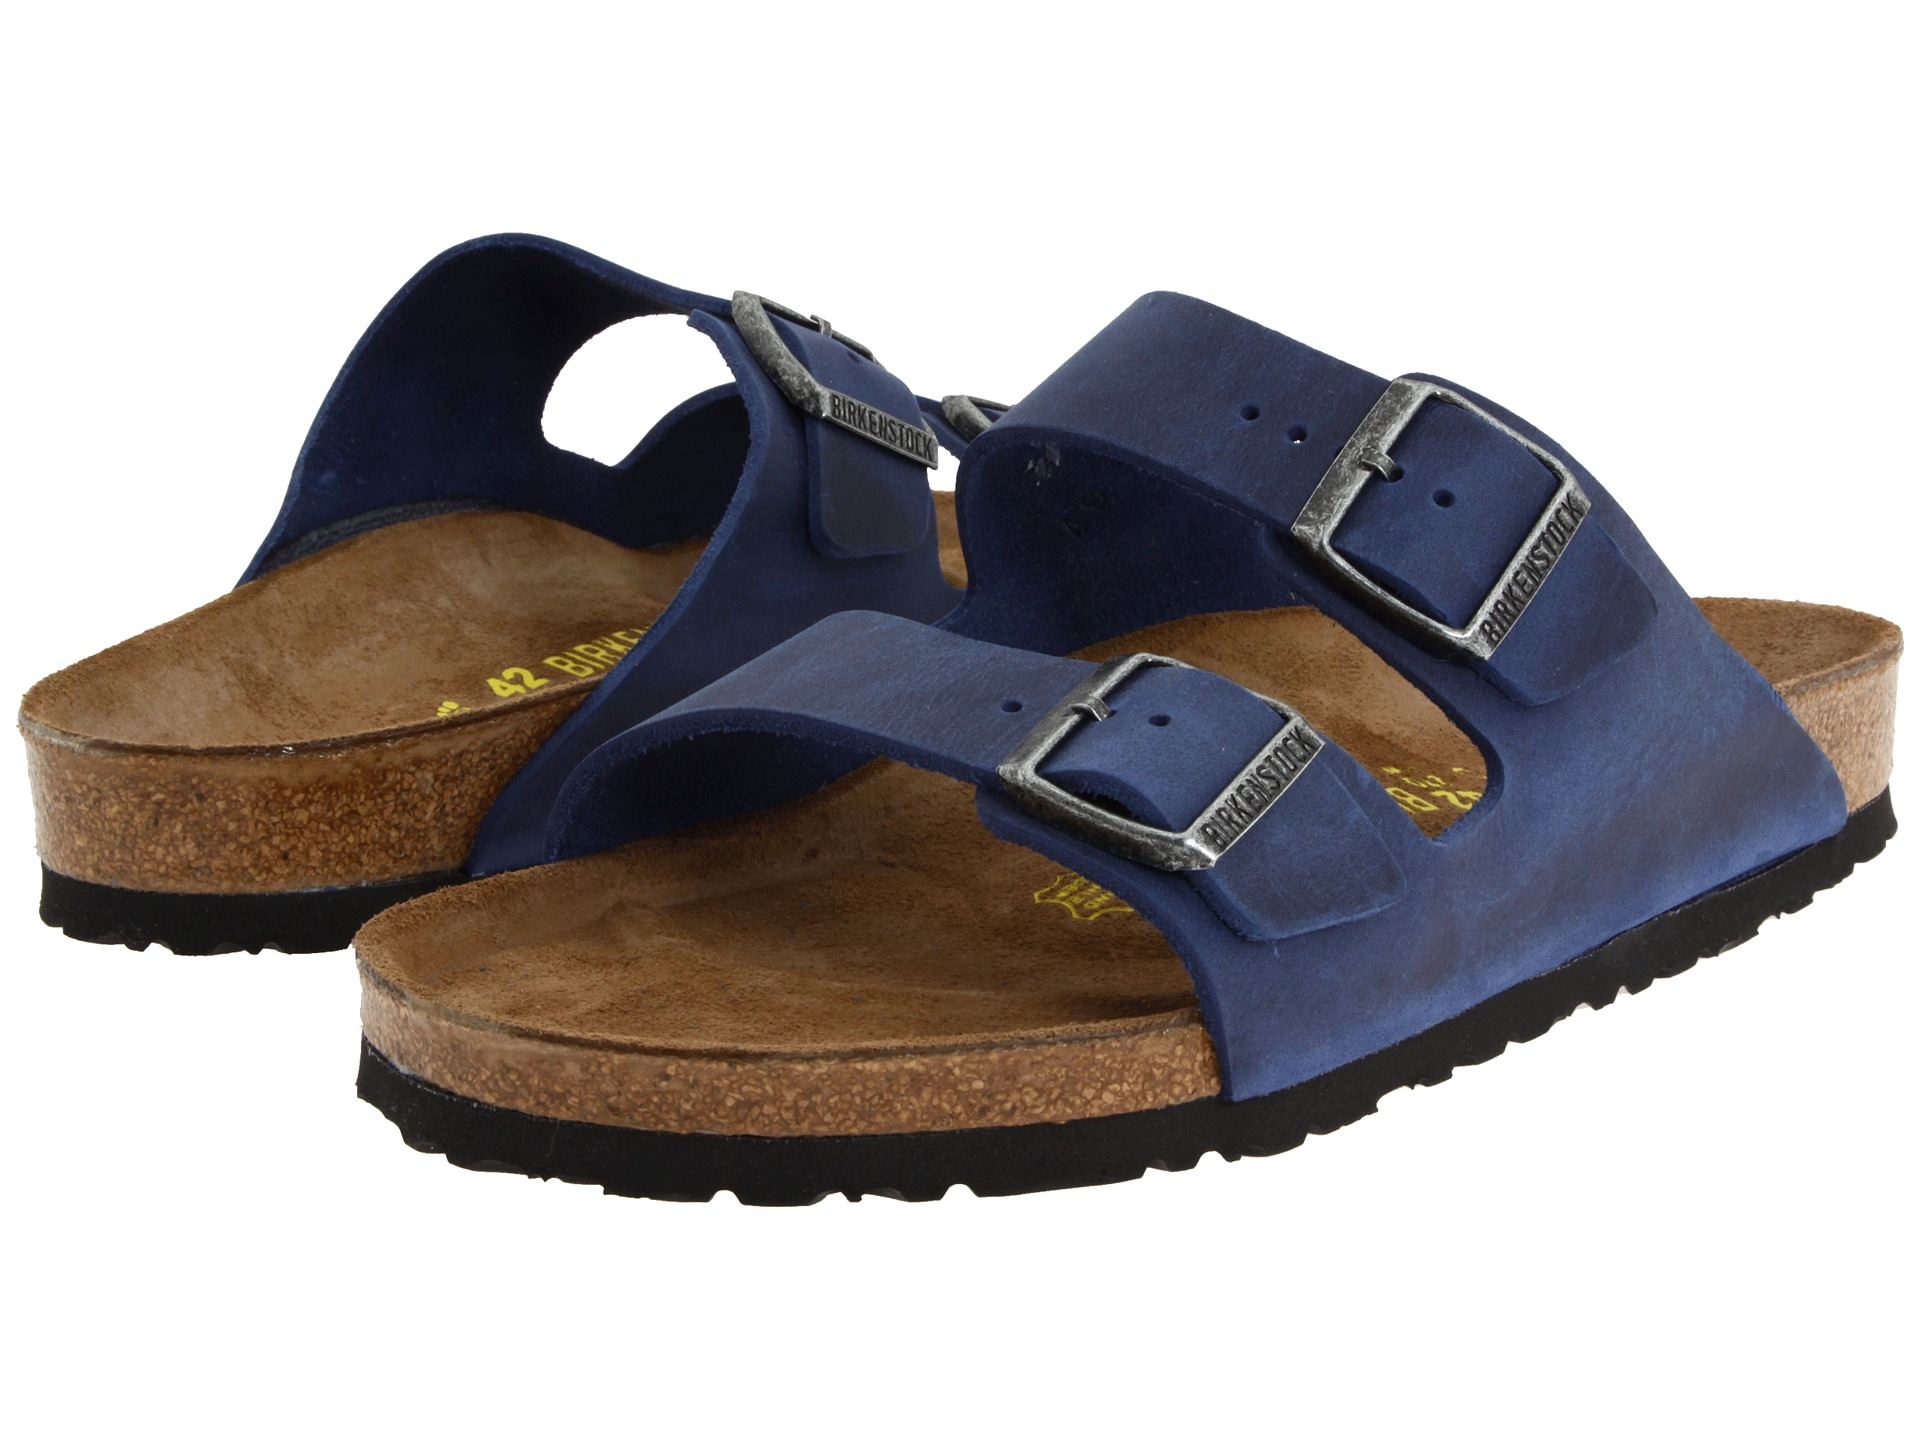 birkenstock sandals florida blue